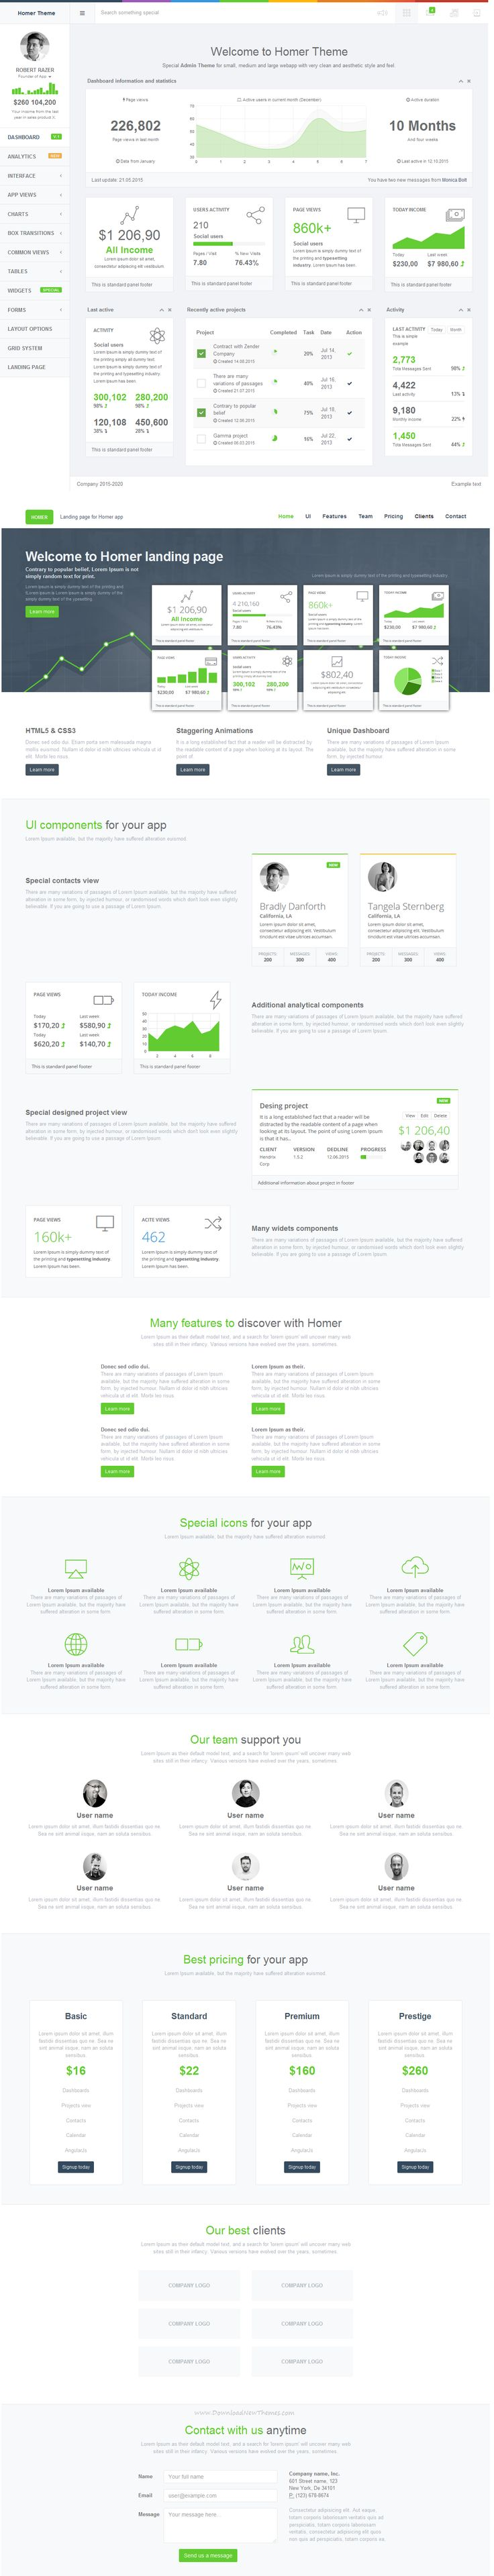 HOMER Admin Theme is a premium admin dashboard theme with flat design concept. It is fully responsive admin dashboard template built with Bootstrap 3+ Framework, HTML5 and CSS3, LESS, Media query, AngularJS, Grunt and Bower. It has a main collection of re